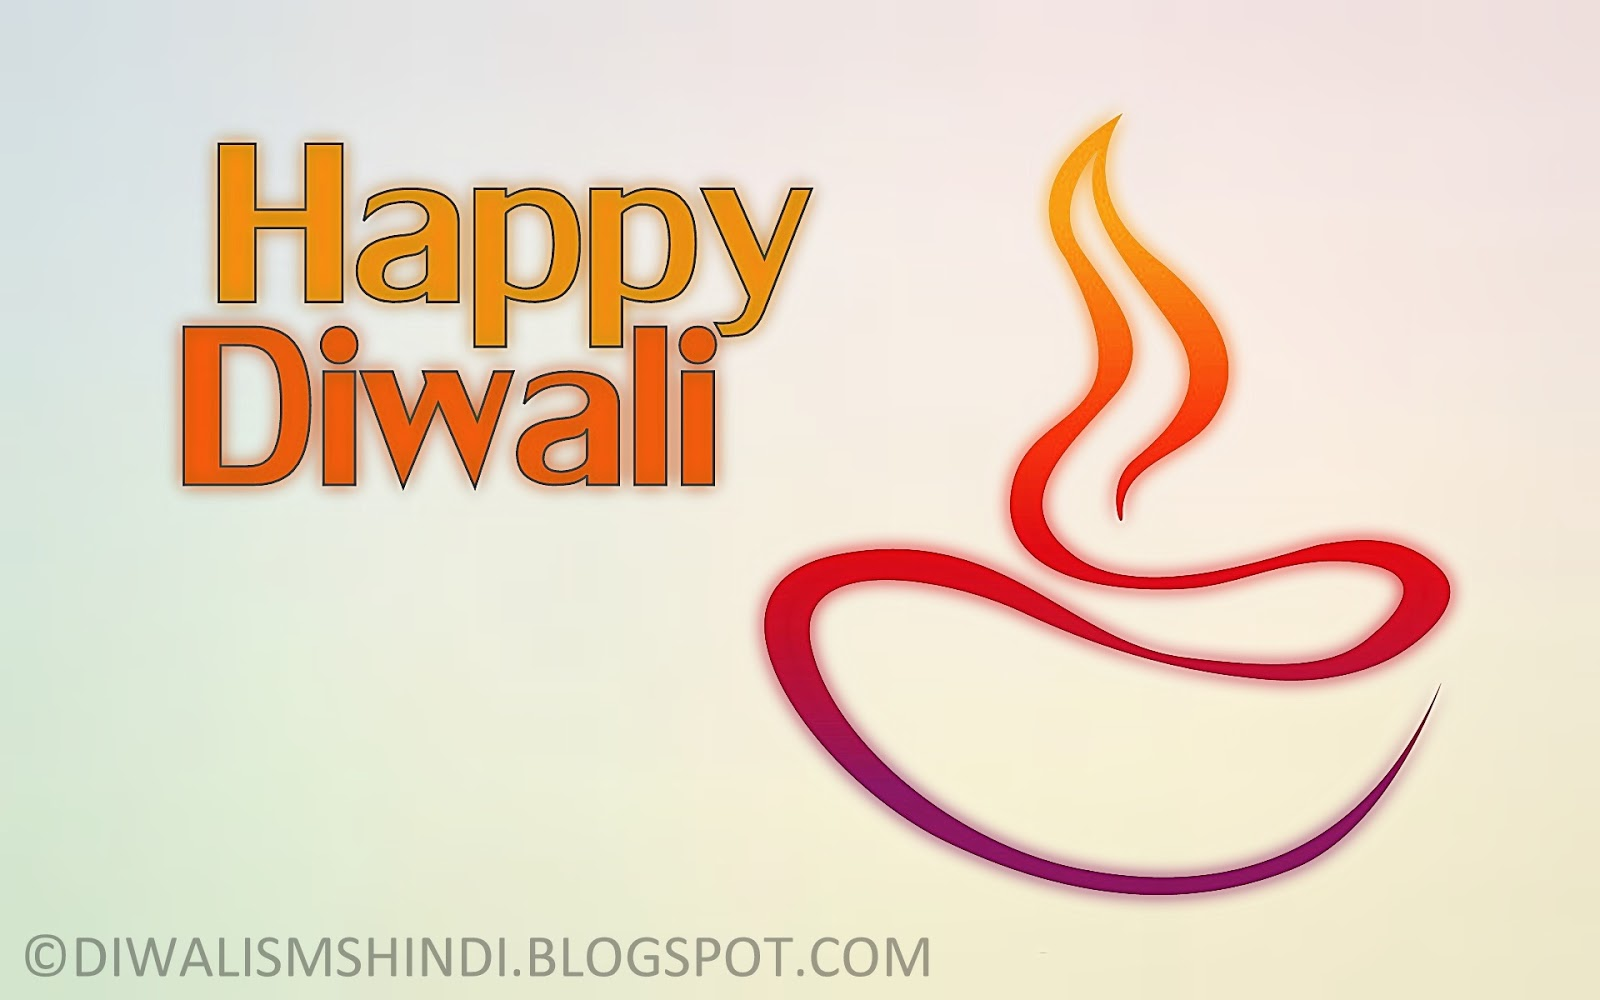 Top 15 diwali greetings in english diwali sms hindi diwali greetings english pics m4hsunfo